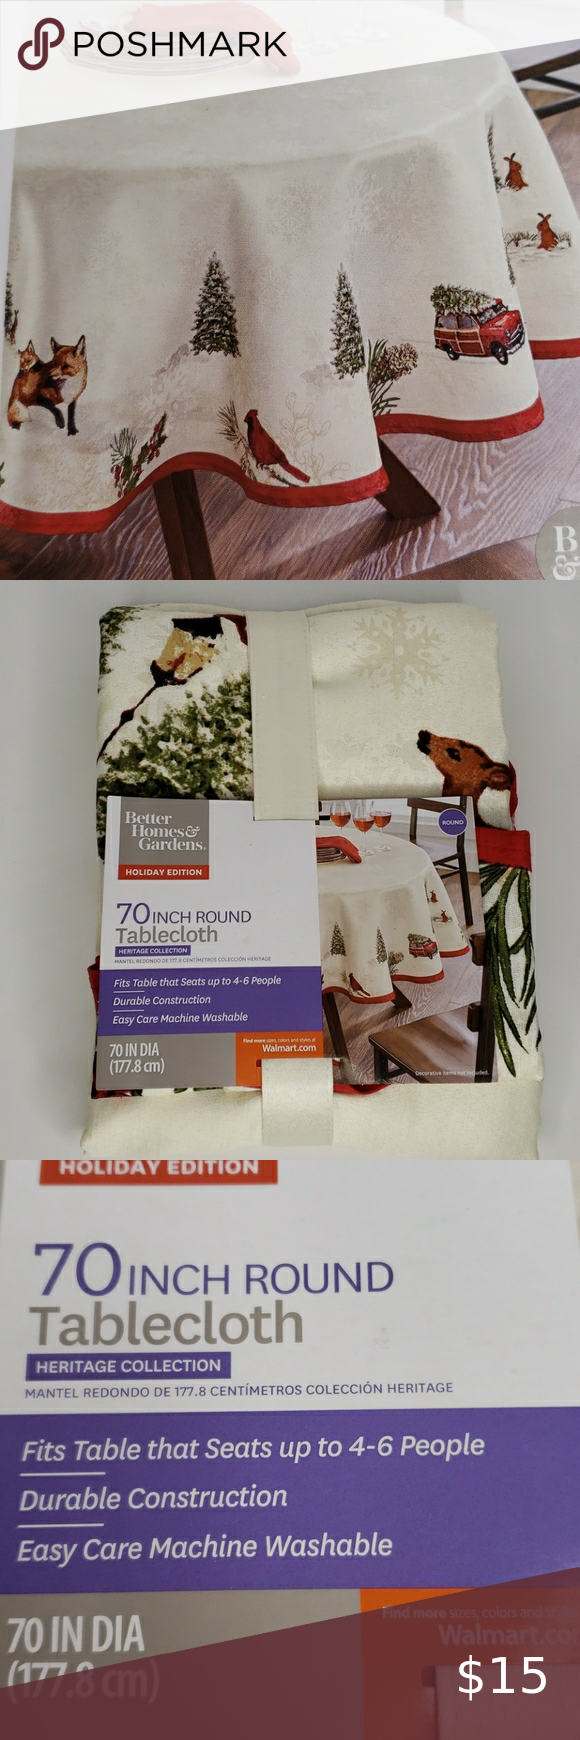 3fa59176abe83f371ca59cc5a429b0e3 - Better Homes And Gardens Holiday Edition Tablecloth